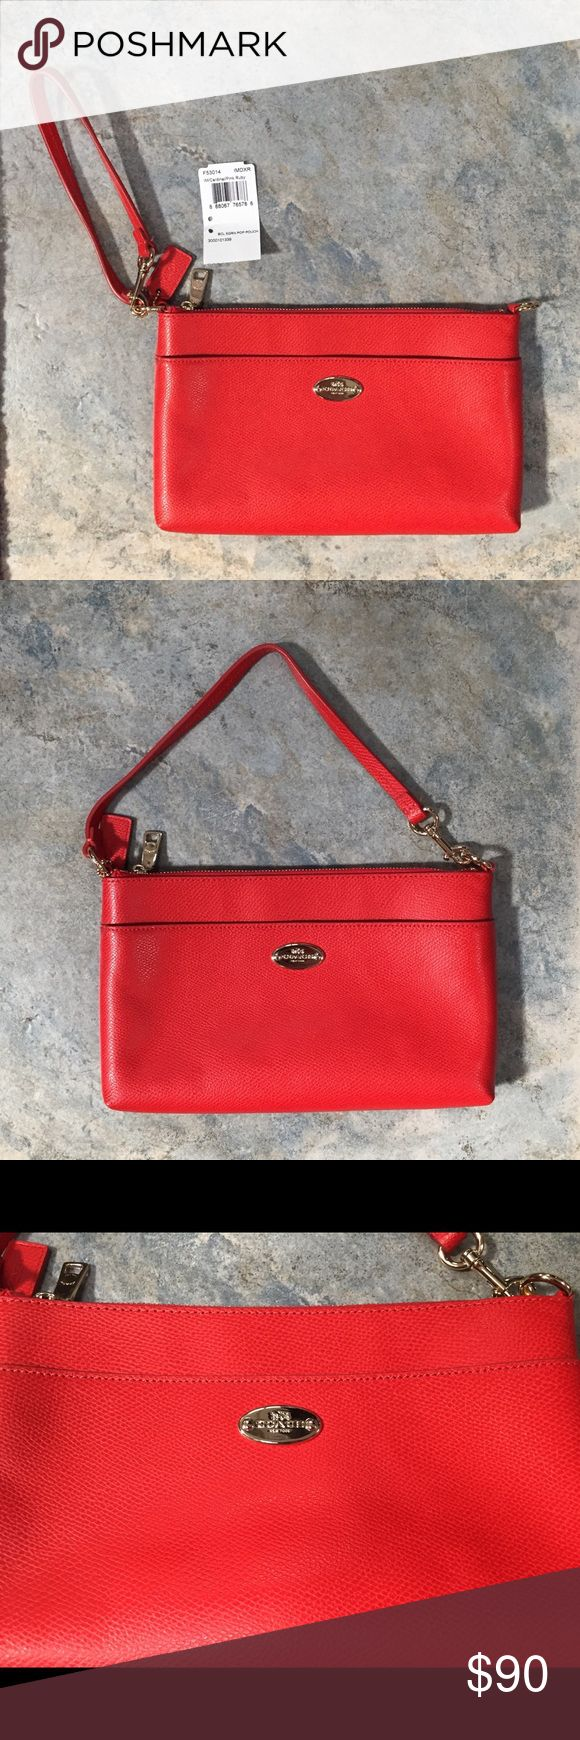 """Coach Clutch Wristlet Cardinal Red Coral AUTHENTIC Coach Clutch Wristlet Cardinal (Red Coral) AUTHENTIC! No. B1521-F53014 Pop Up Pouch *missing pop up! Approx . measurements 10"""" x 6"""" x 1"""". Purchased in 2015. NEW with Tags! NEVER USED! Smoke & Pet-free home. Retail $165! Coach Bags Clutches & Wristlets"""